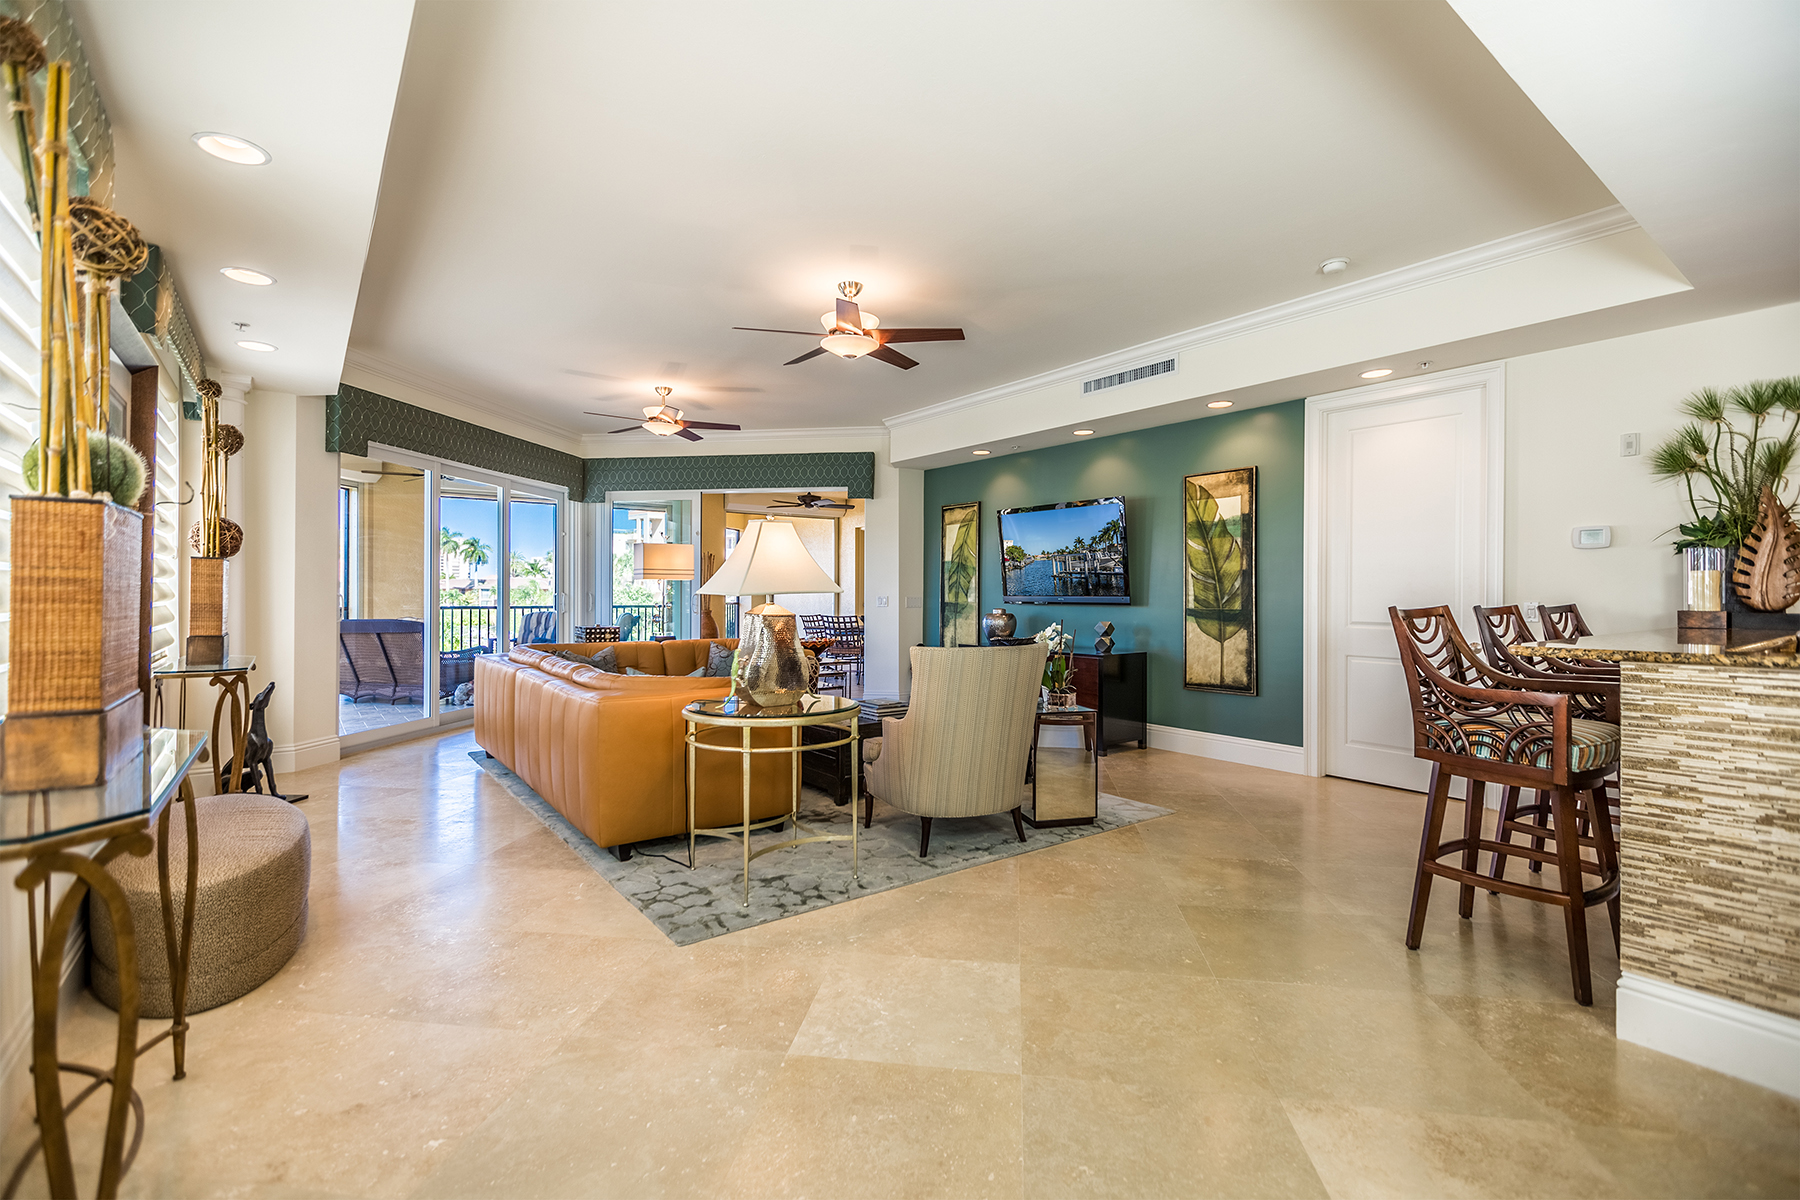 Condominium for Sale at MARCO ISLAND - MARINERS PALM HARBOR 908 Panama Ct 201 Marco Island, Florida, 34145 United States